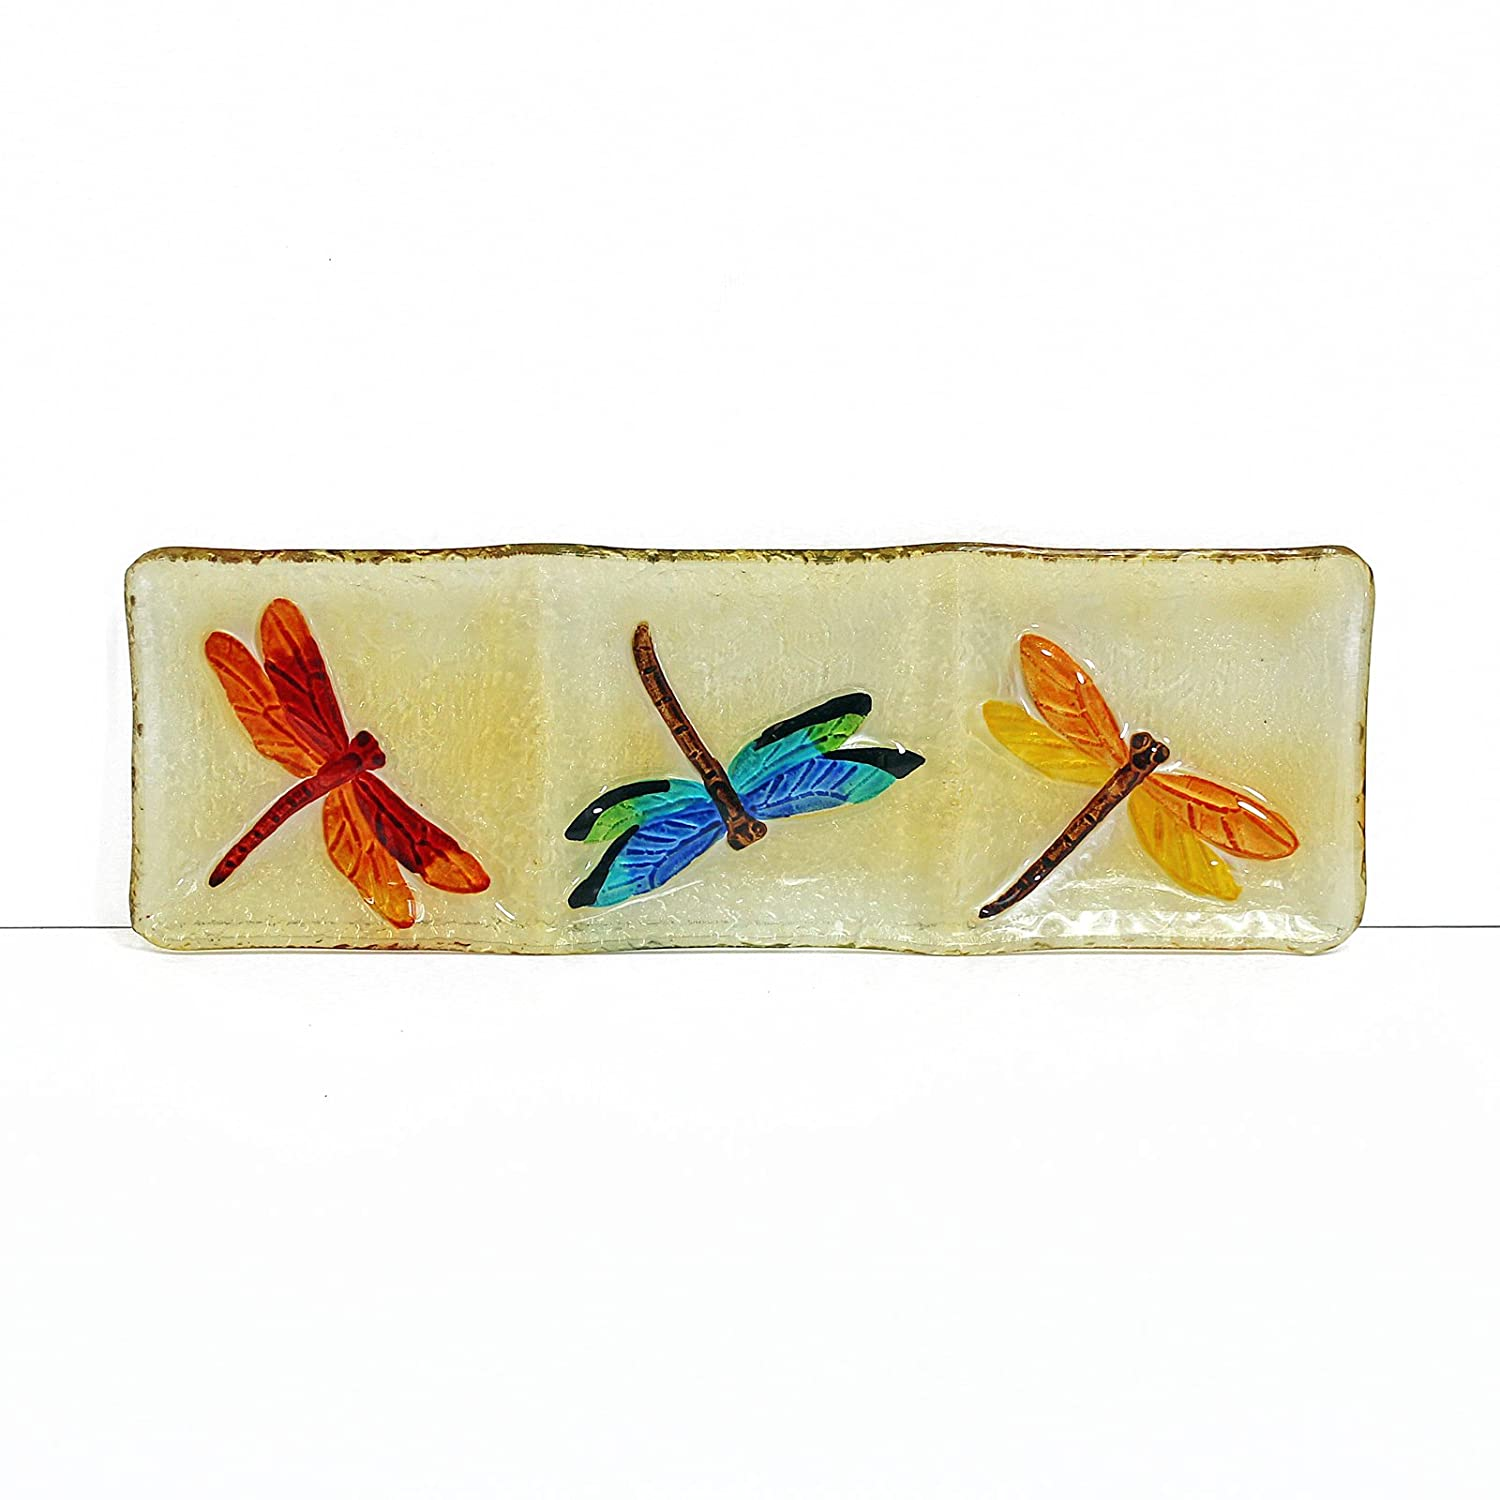 WELLAND Hand Painted Decorative Glass Platter Dragonfly Pattern 9X9X1